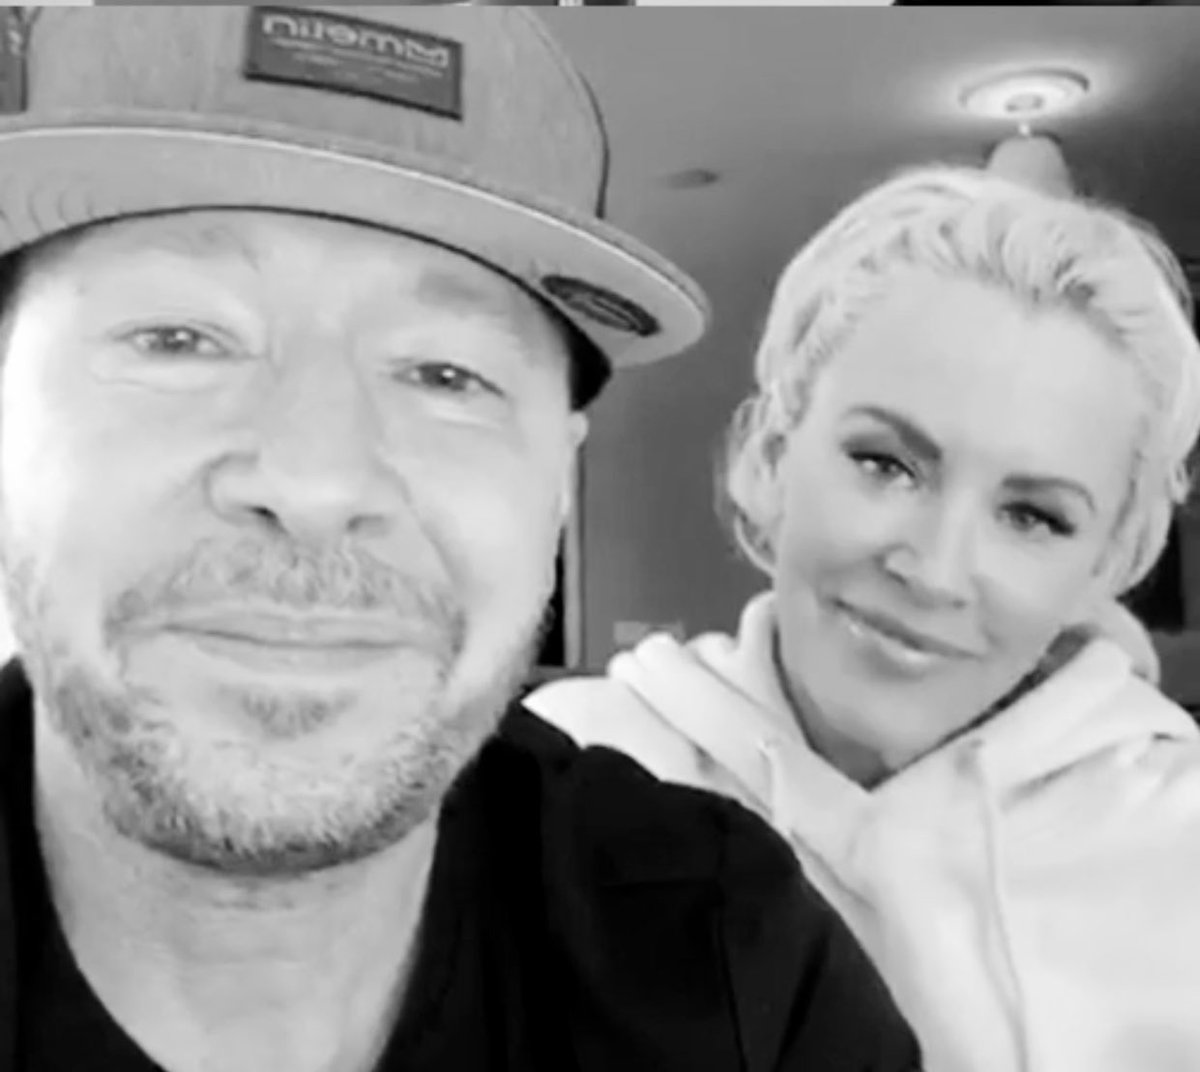 So much love for our #Captain. @DonnieWahlberg and our Queen @JennyMcCarthy  #love #BHLove #loveeternal  <br>http://pic.twitter.com/iK4HR05pCs